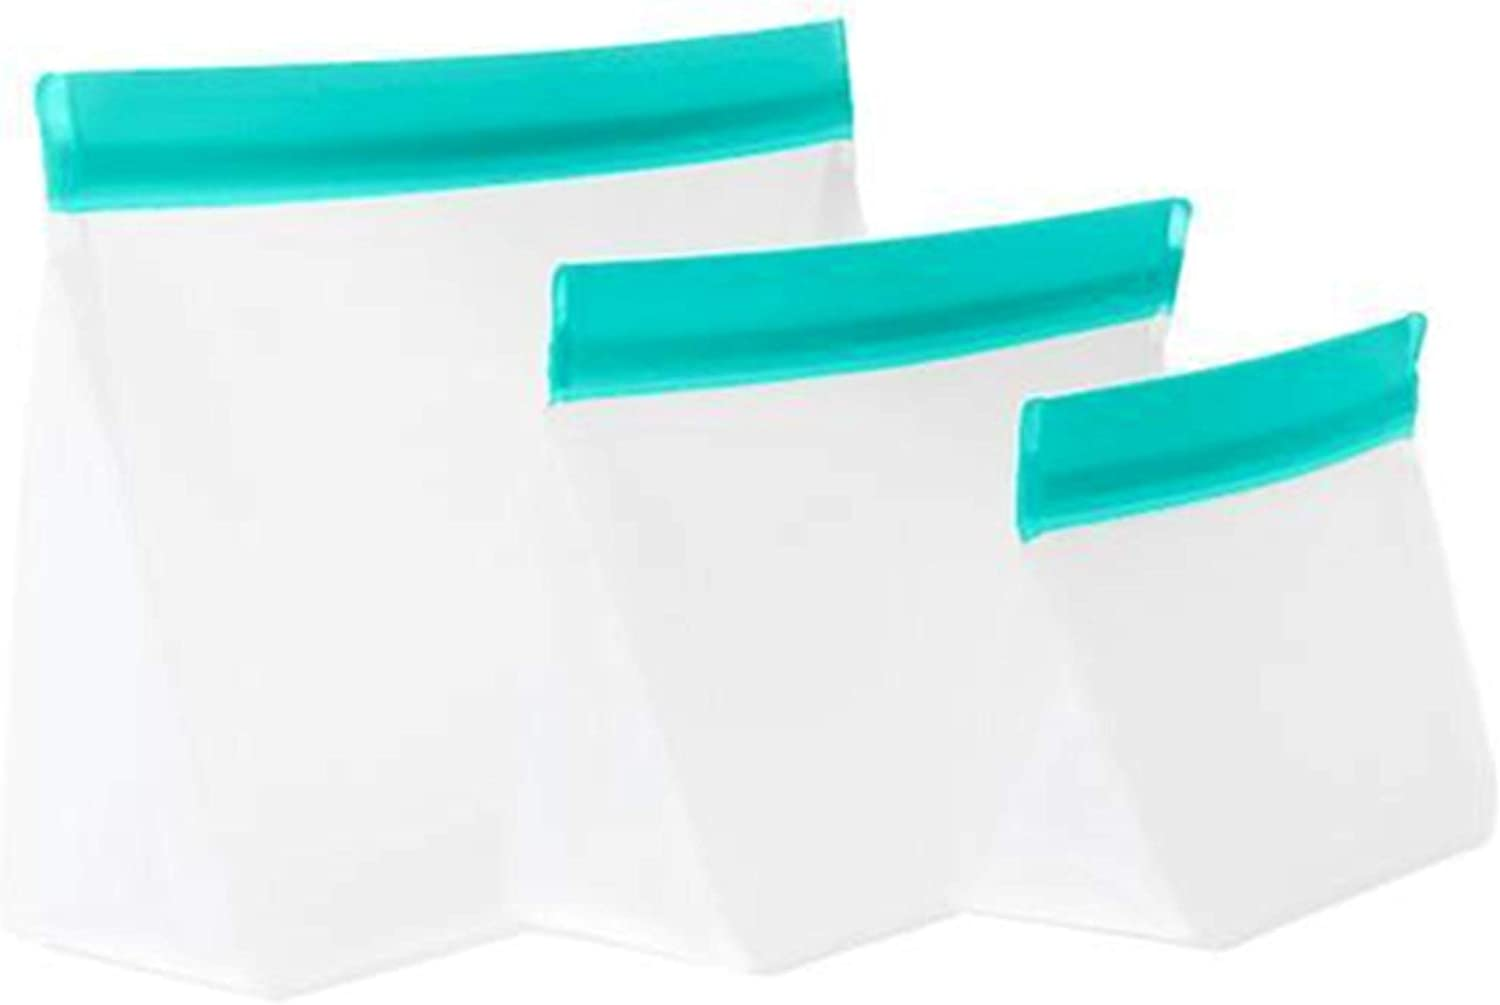 mumi Reusable Zip Up Bags | Food Storage Bags, Travel Organizer | Airtight and Leak-proof Seal | Expandable Base | Set of 3 Reusable Bags (10 x 7, 8 x 5, 6 x 4 inches) (Aqua)